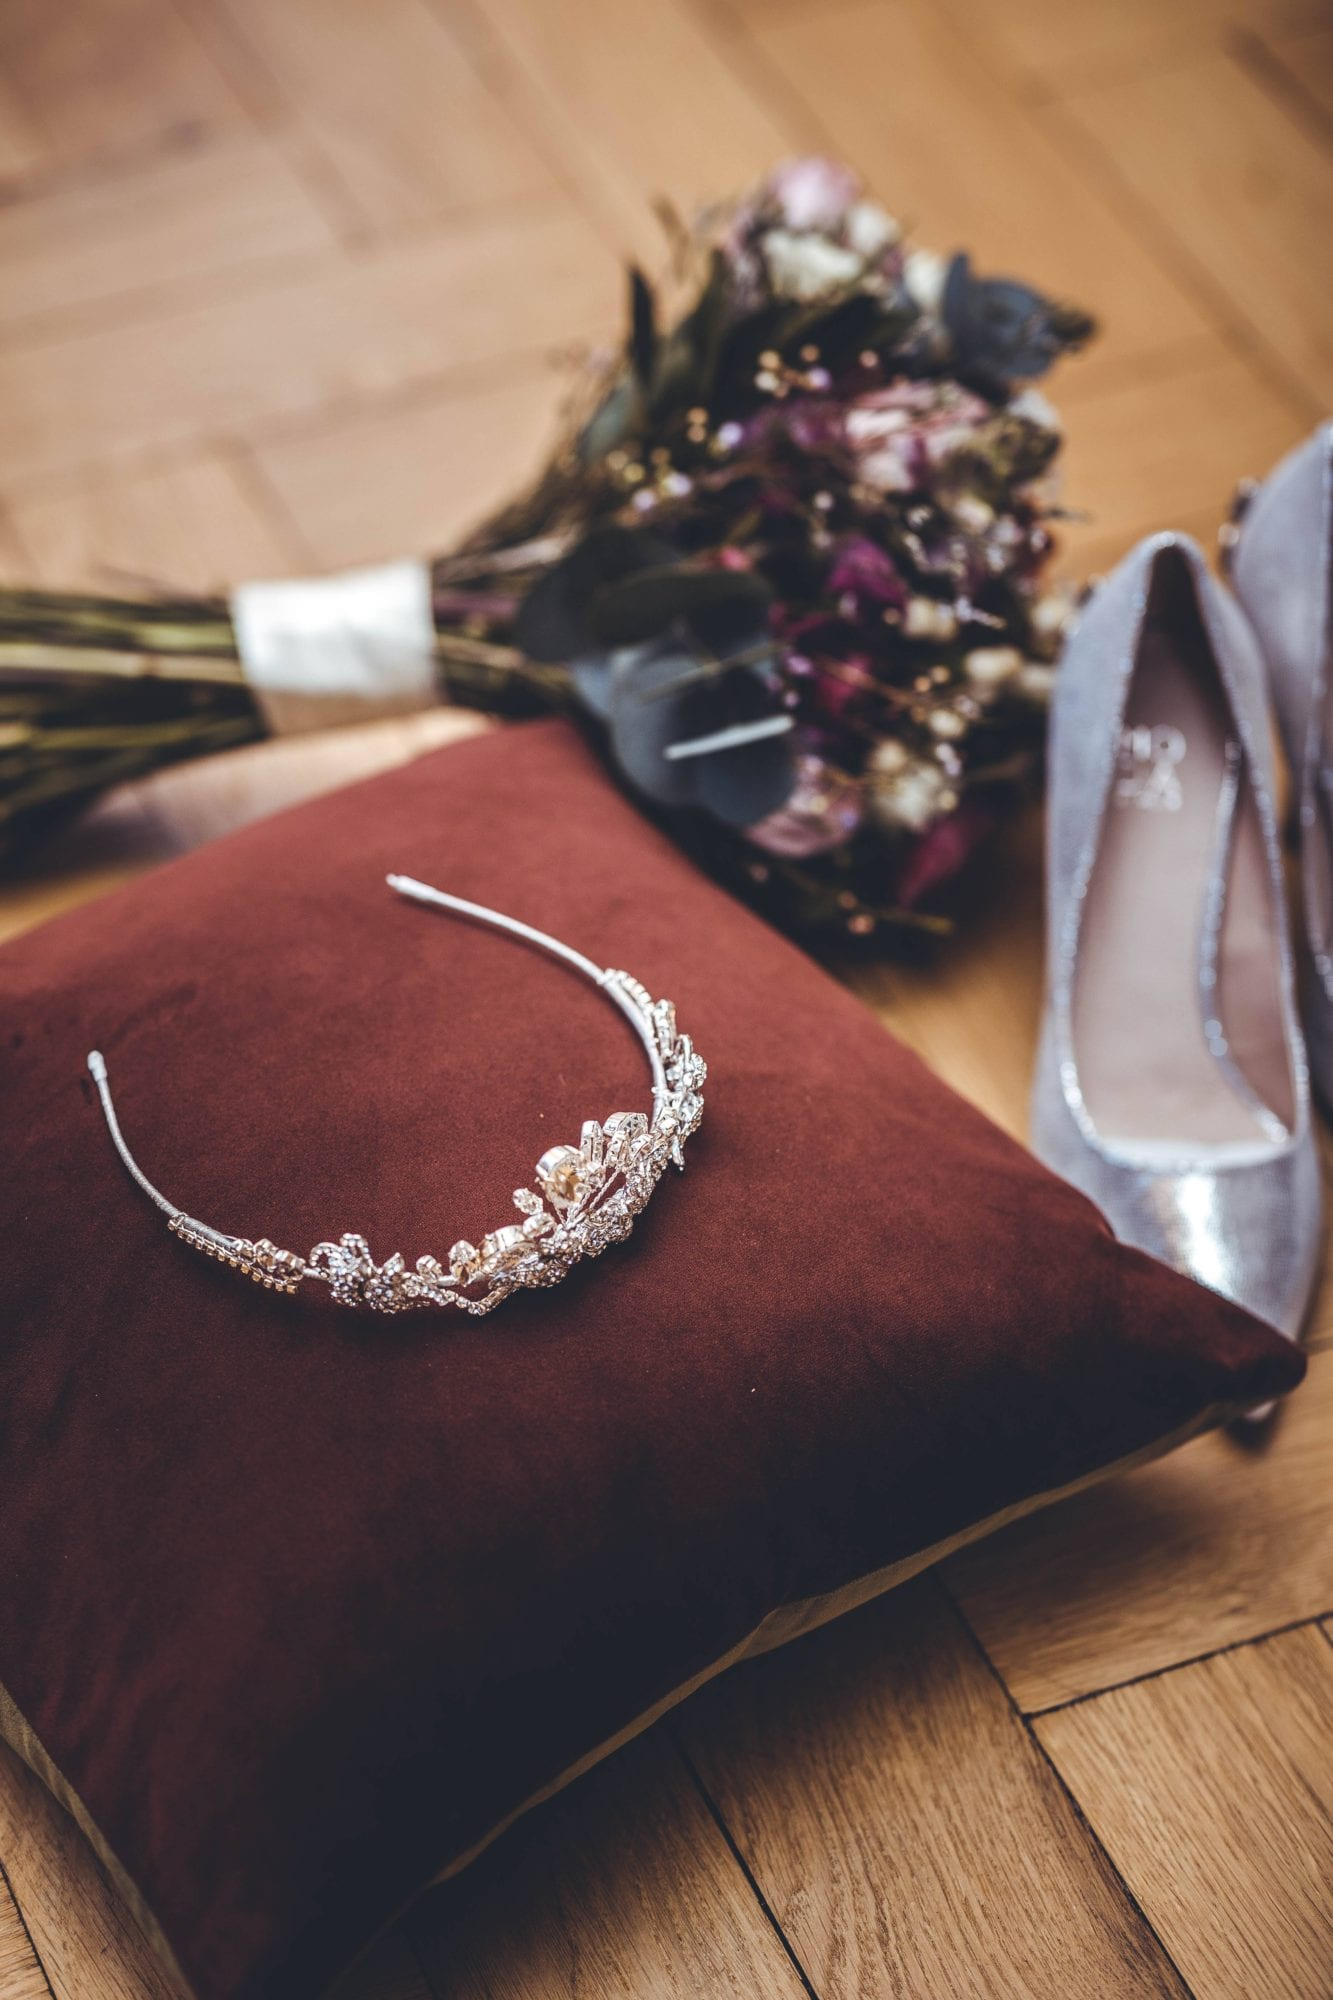 The Grand Wedding Tiara